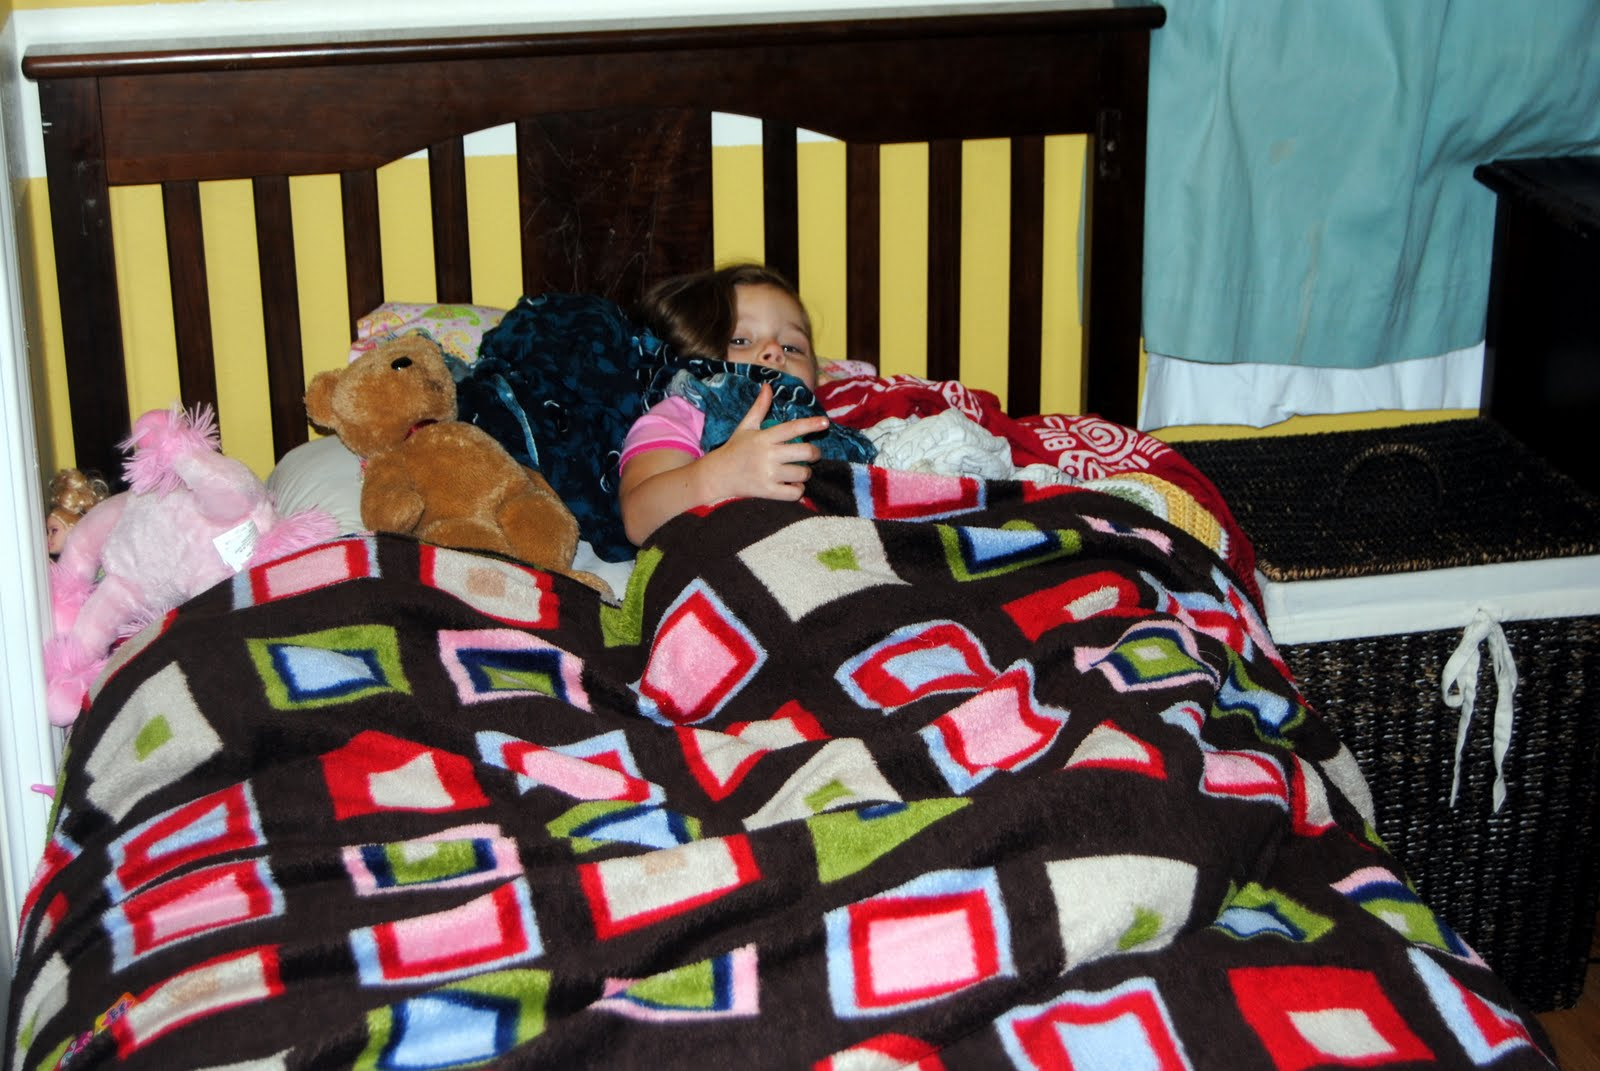 Crib for triplet babies - The Kids Were So Excited There Was No Lack Of Enthusiasm Especially When It Came Time For Naps